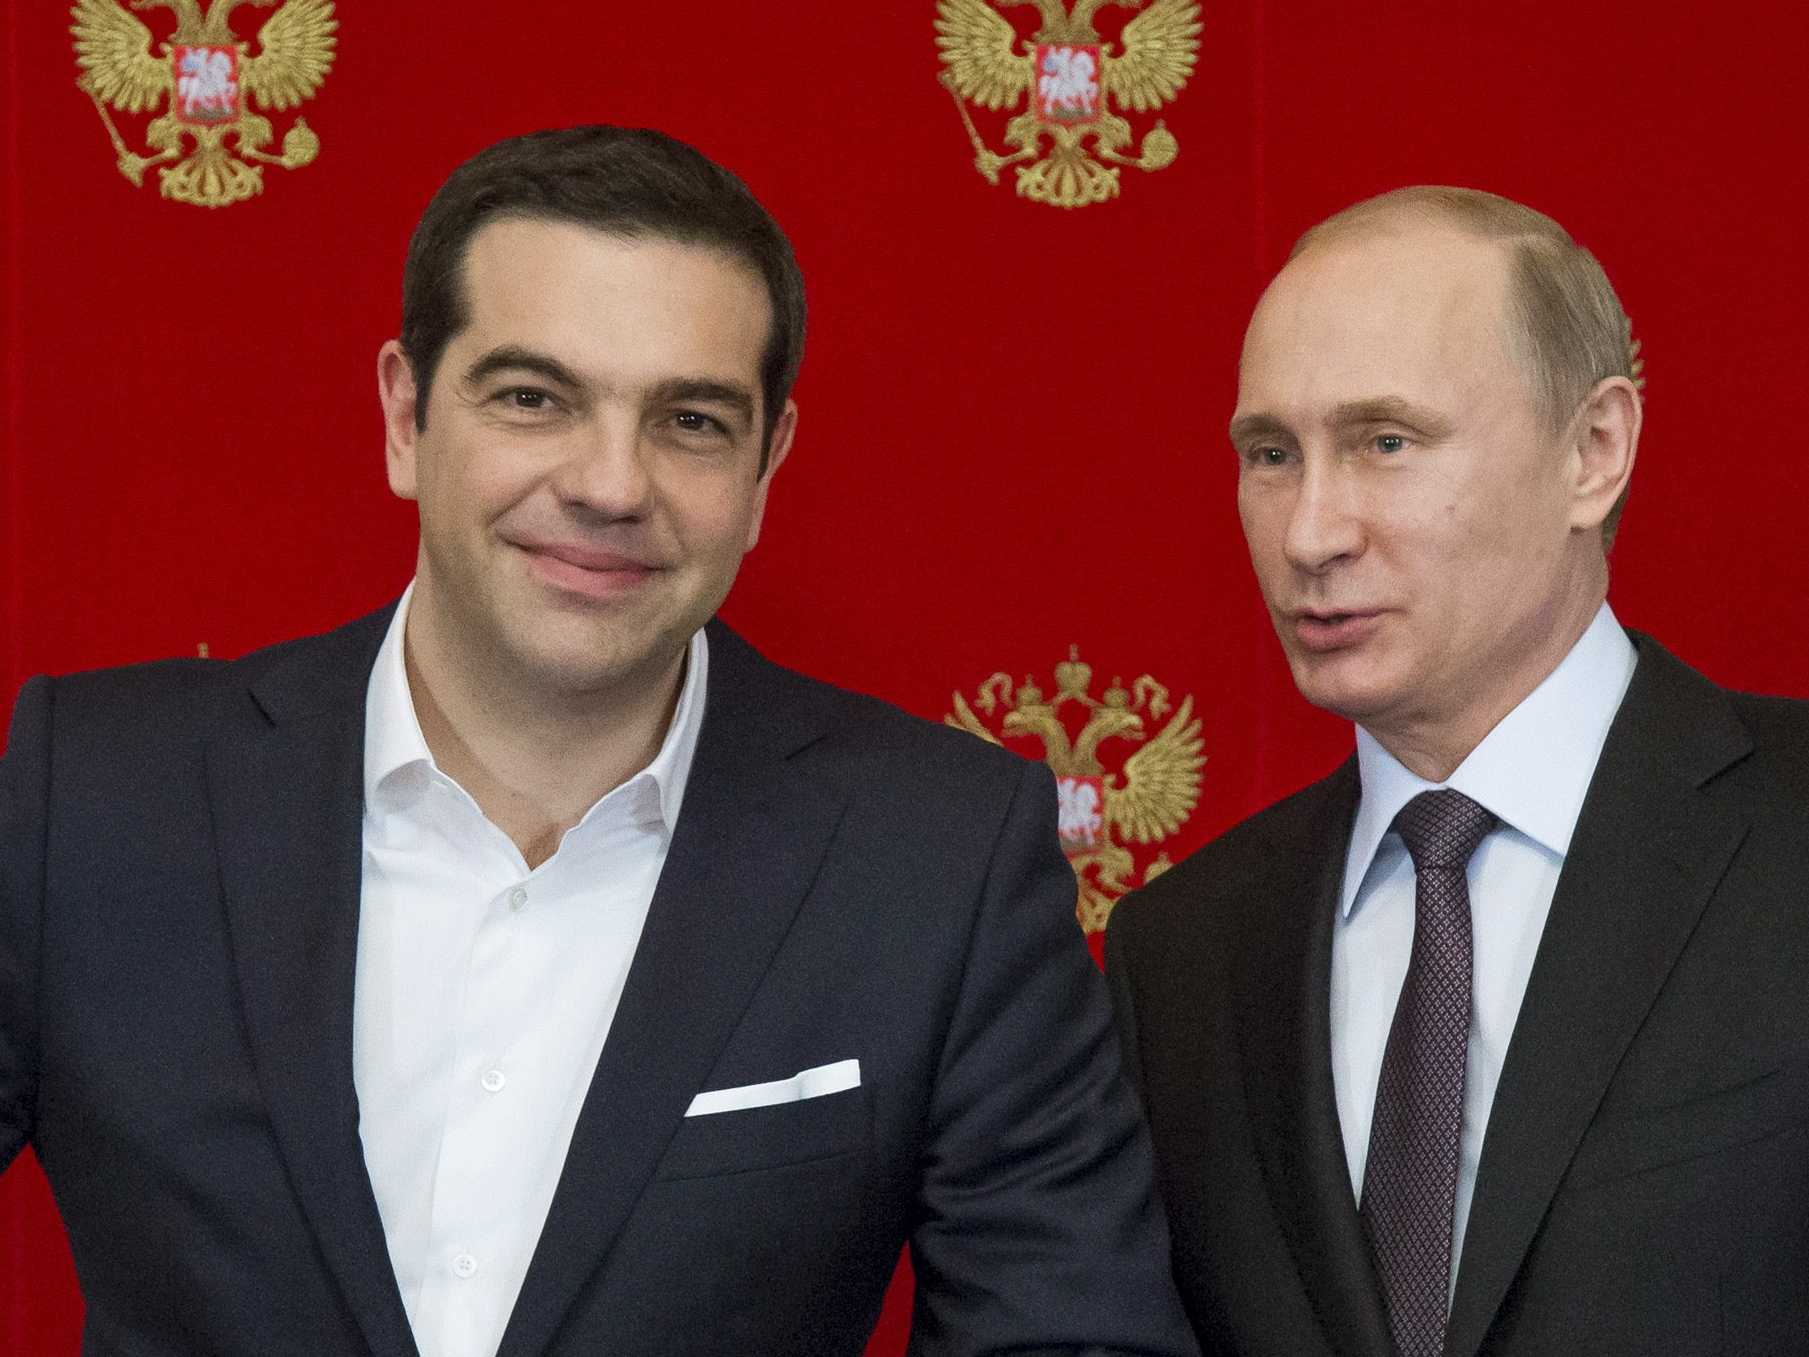 'Putin's in the middle of the game' as Russia looks to meddle in Greece